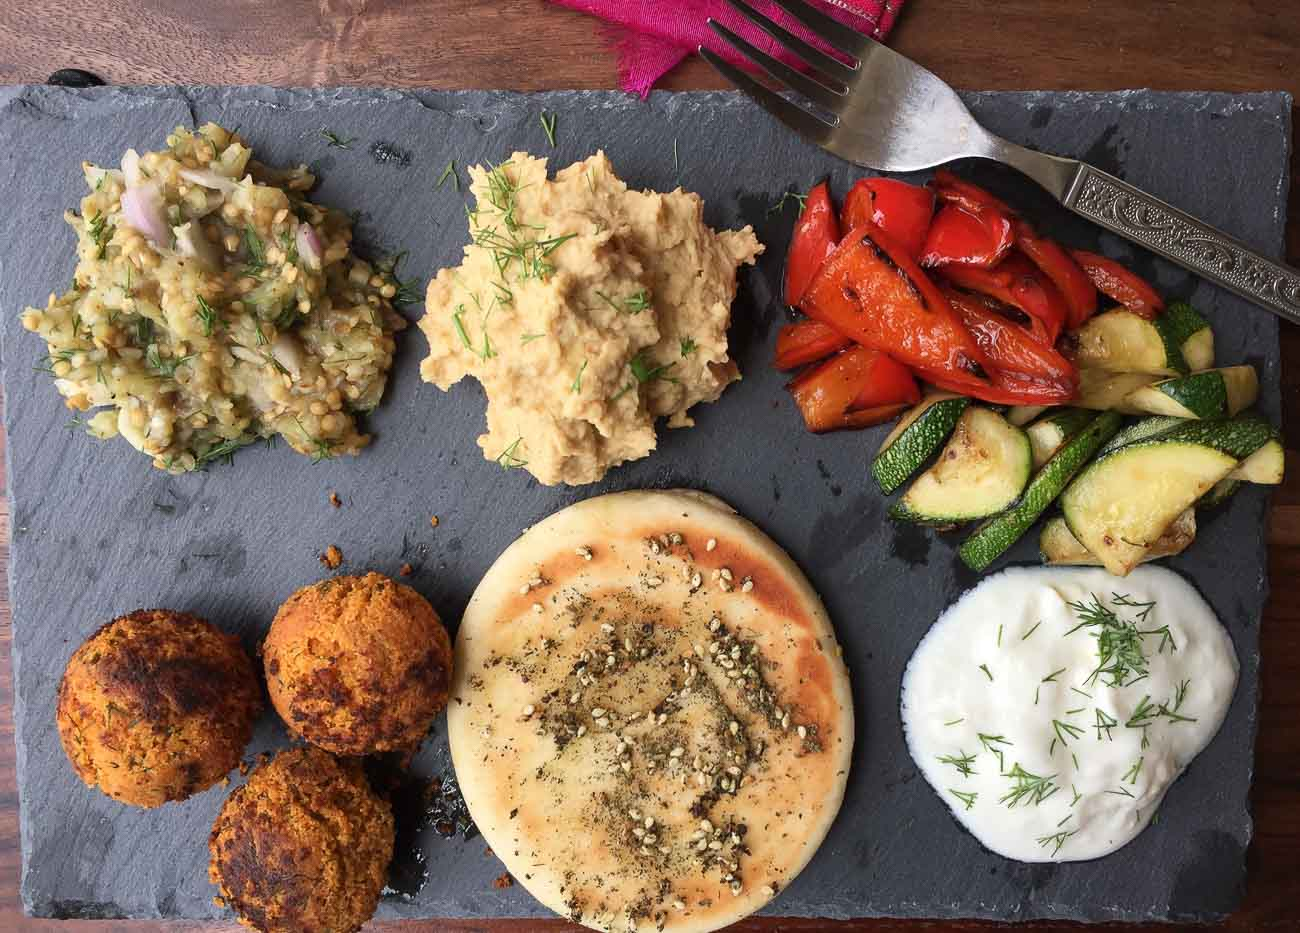 Mezze Platter Hummus Baba Ganoush Tzatziki Chickpea Falafel Pita Bread Stir Fried Vegetables By Archana S Kitchen